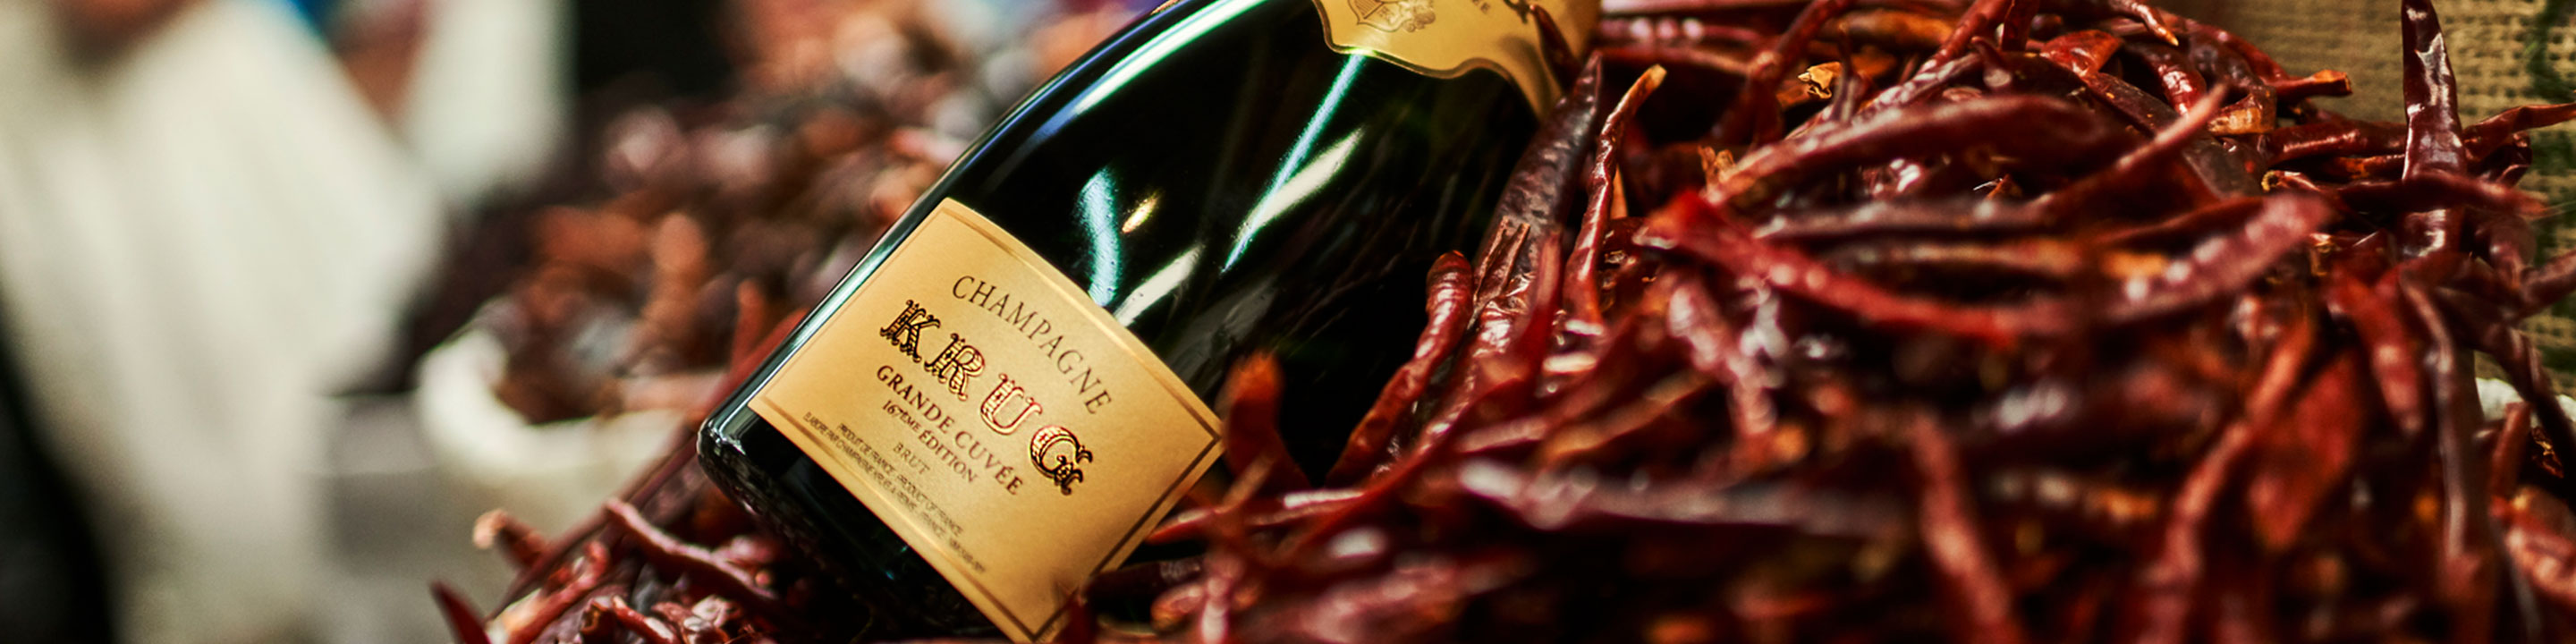 From its very inception, Krug would be first in creating only prestige Champagnes every year, a still unique and defining trait of Krug to this day.